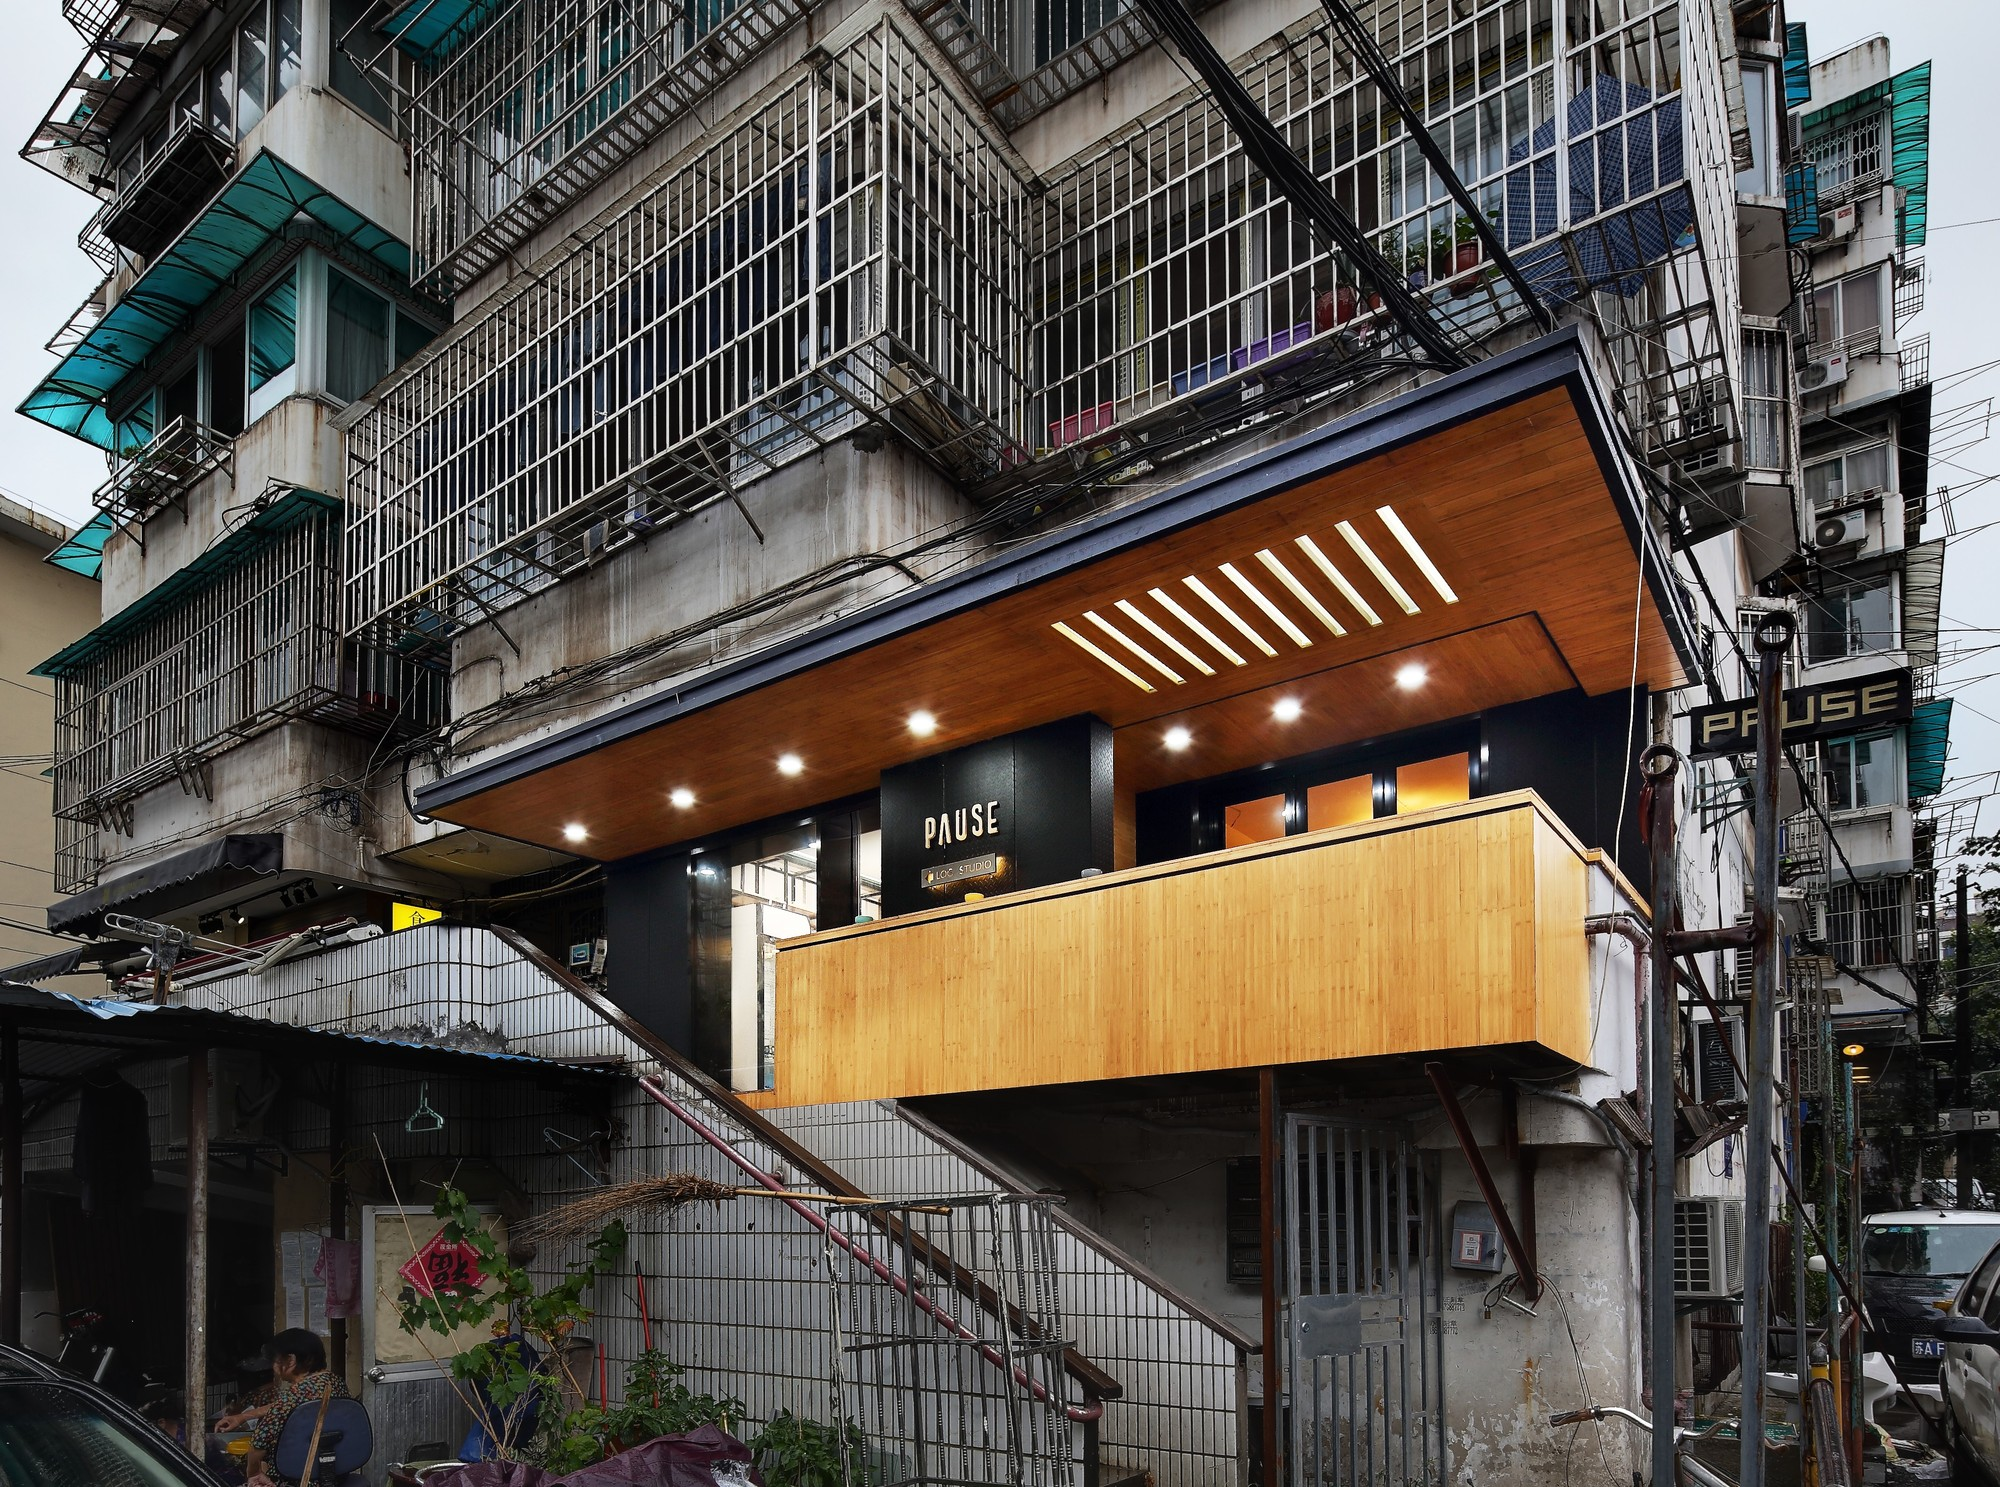 Pause Cafe Fanaf Archdaily